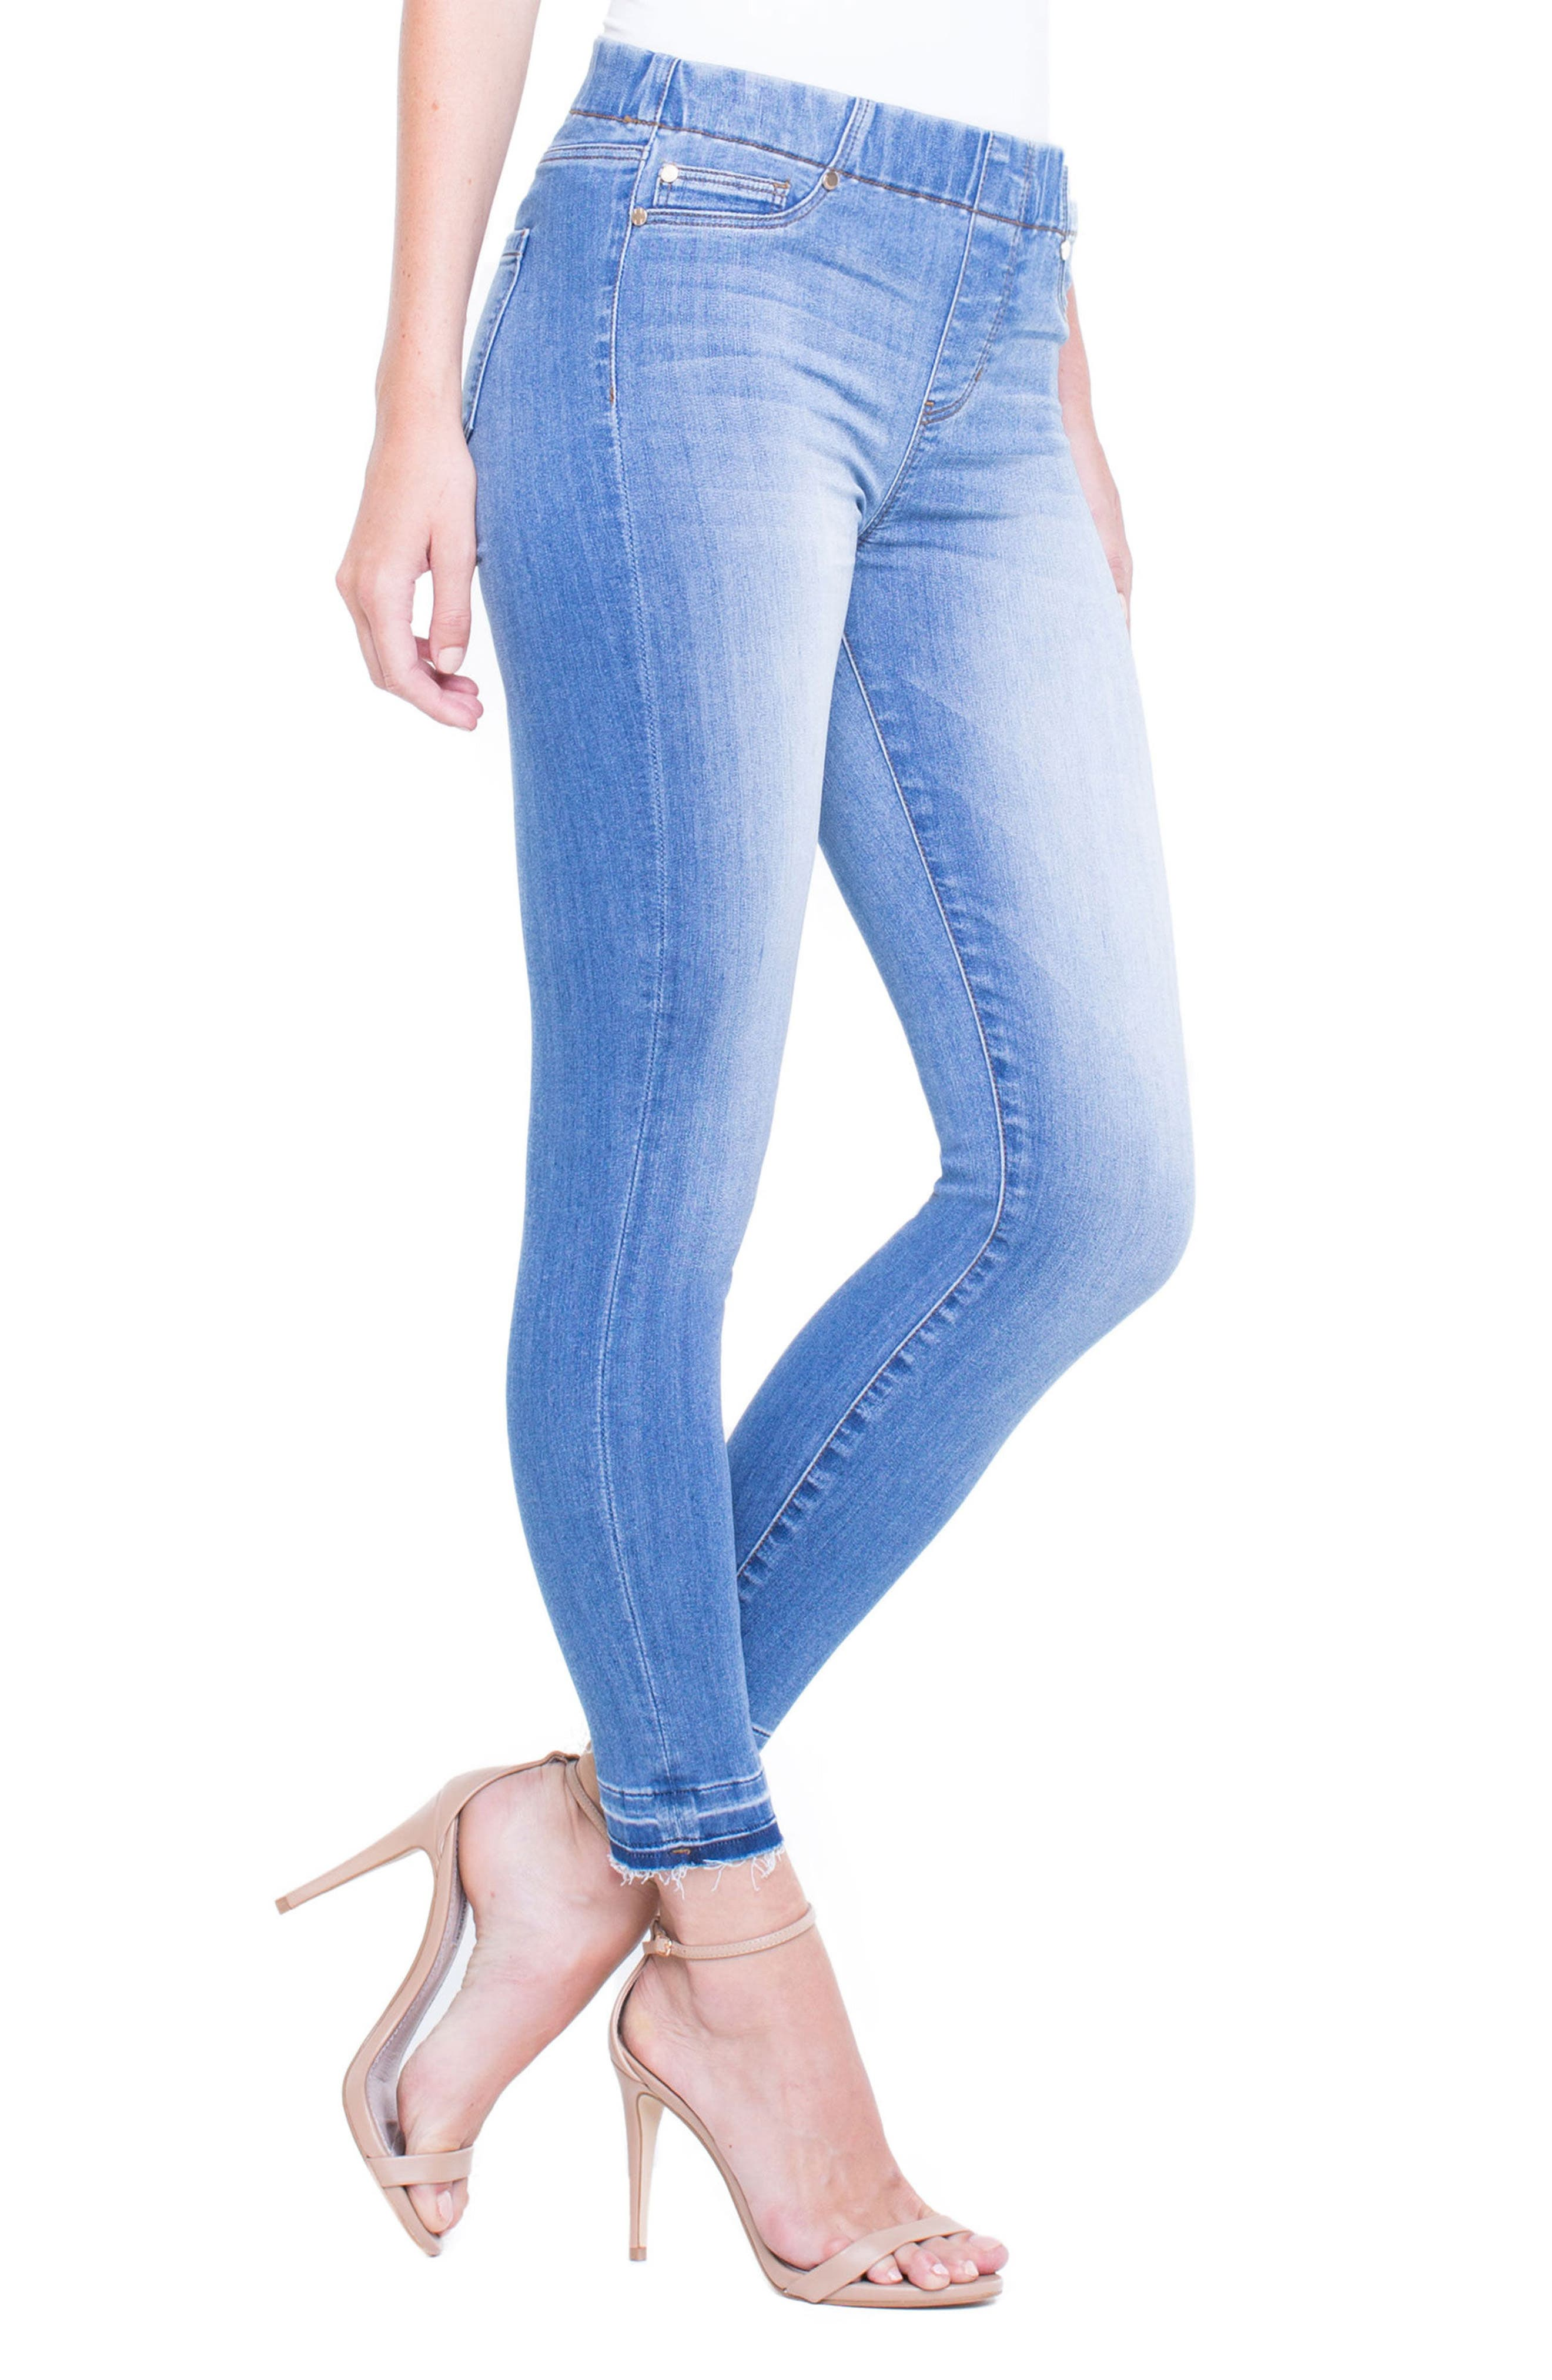 Chloe Release Hem Denim Leggings,                             Alternate thumbnail 3, color,                             RIDGEWAY GRIND